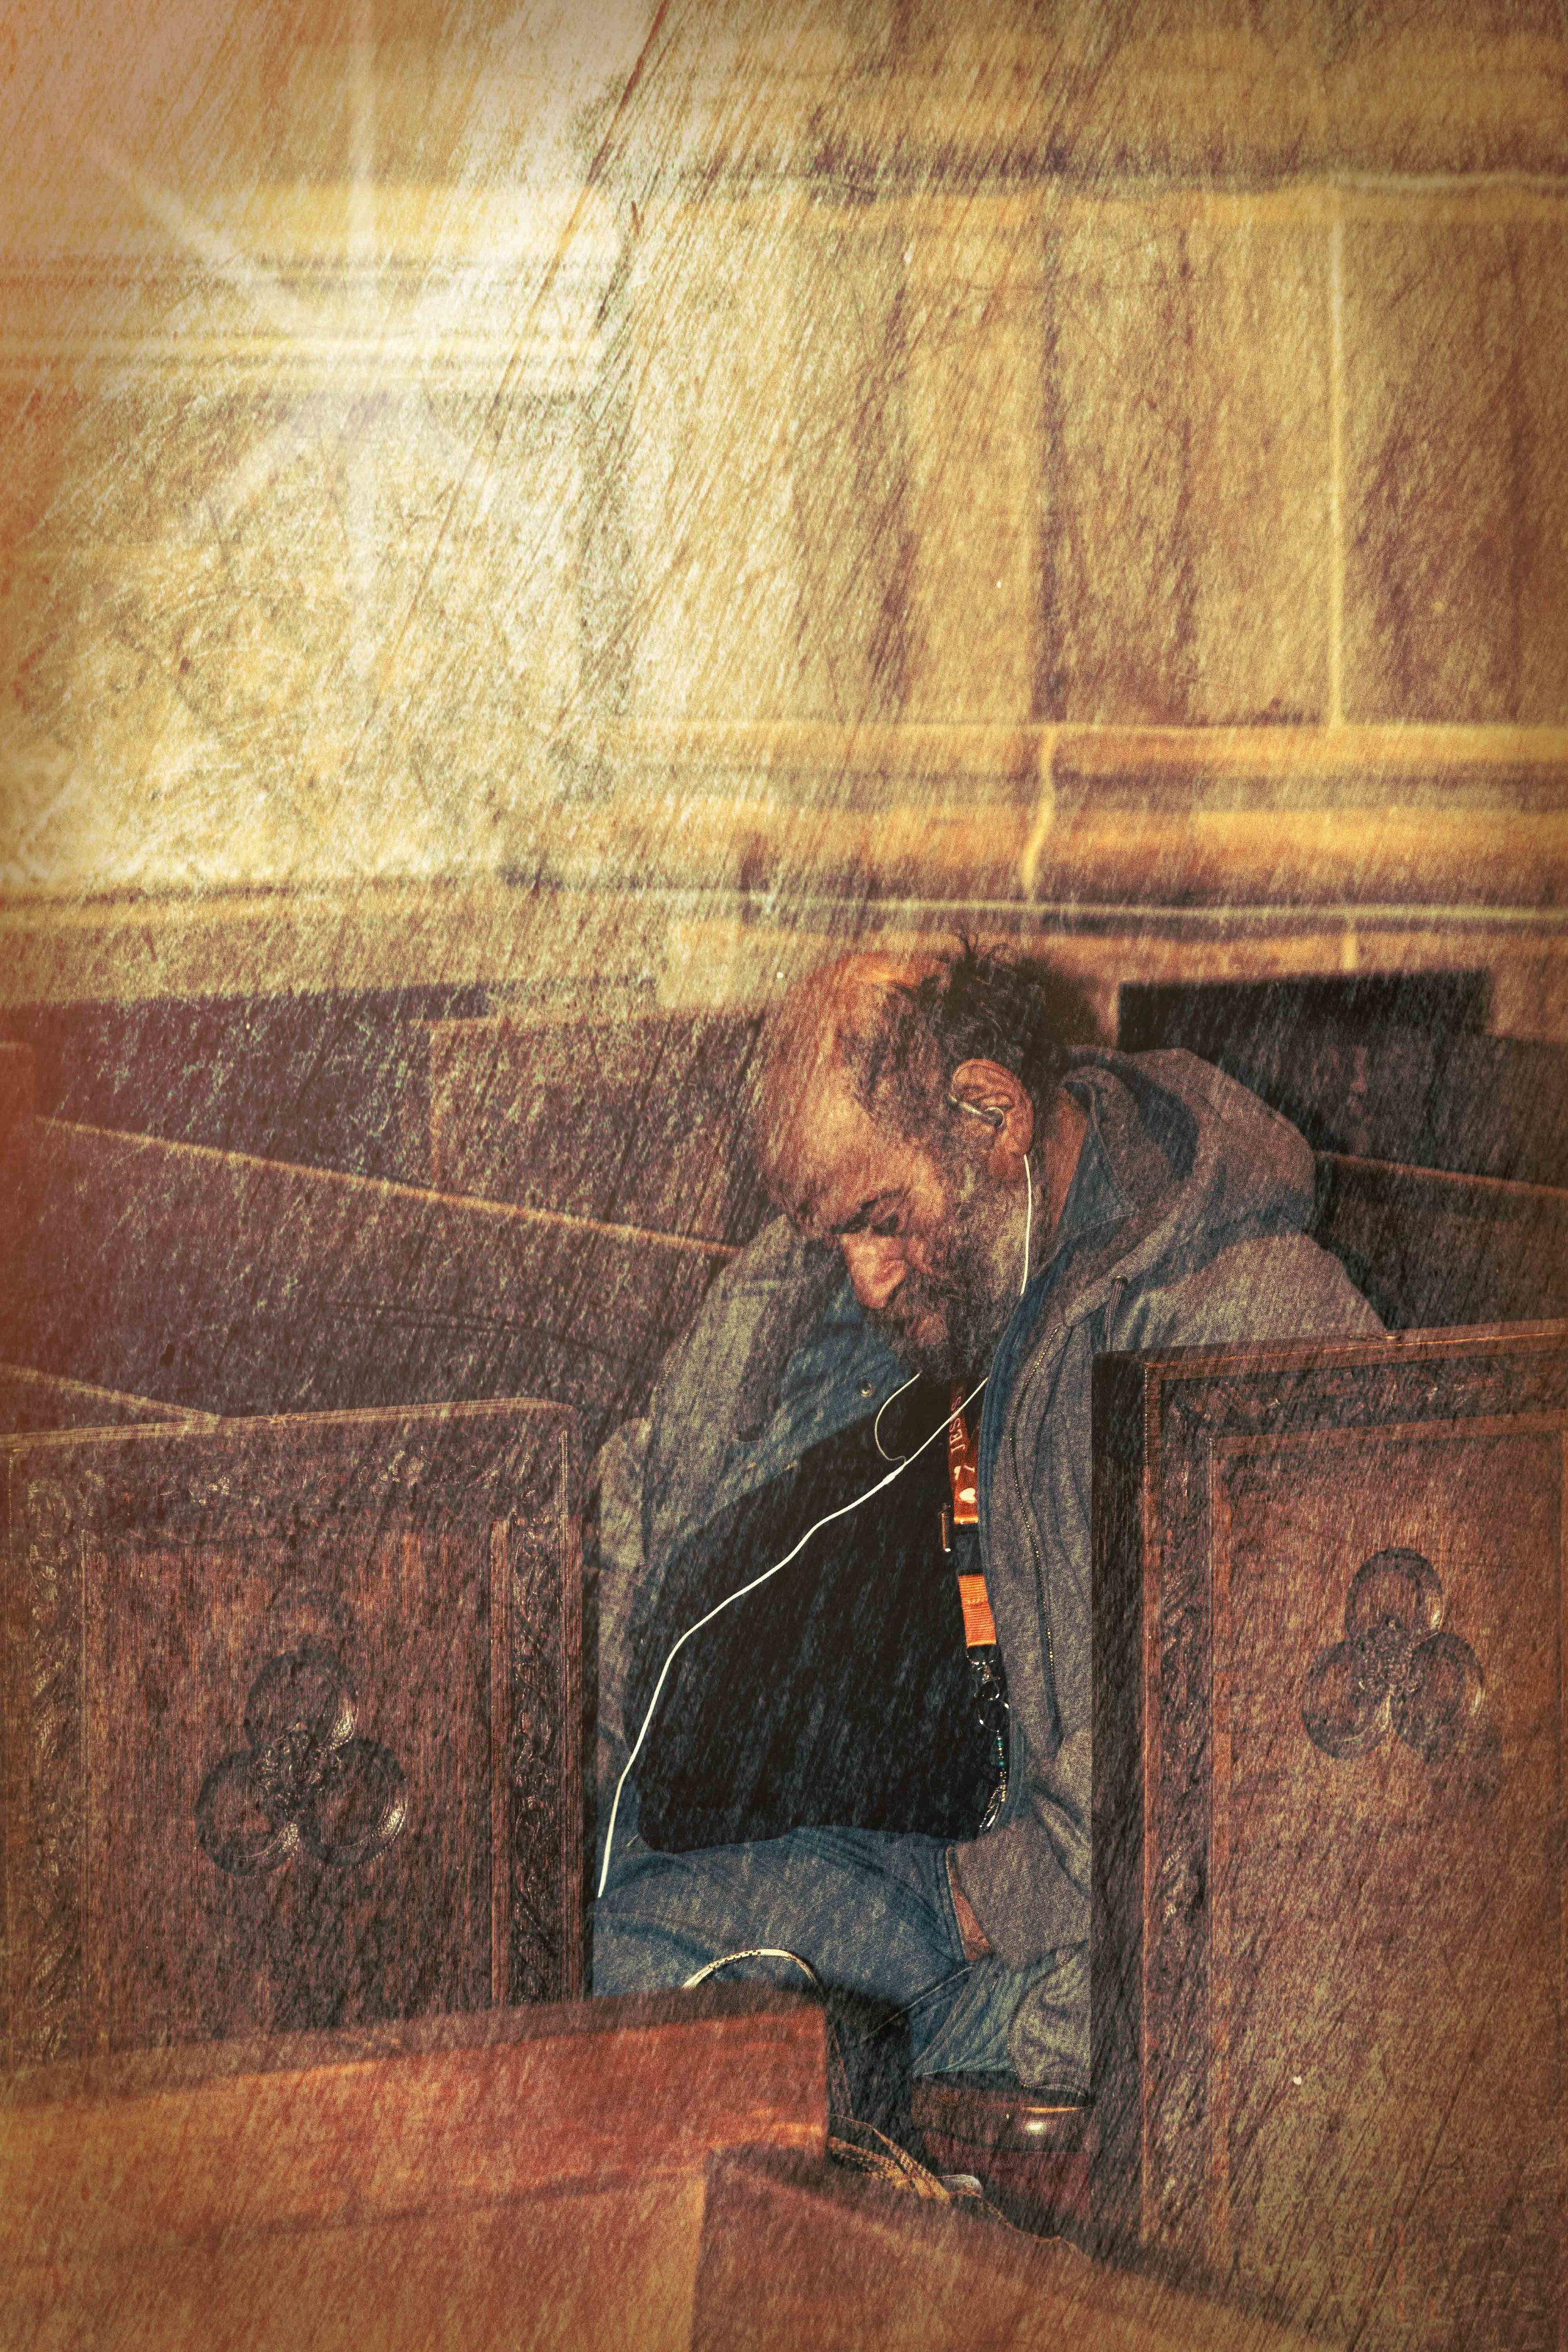 The Homeless Man and the Passerby - Nikon D7100, 1/60 @ f5.6, ISO 1600, 85mm - Shot in St. Patrick's Cathedral, NYC - See my poem of the same title in the Poetry Blog.